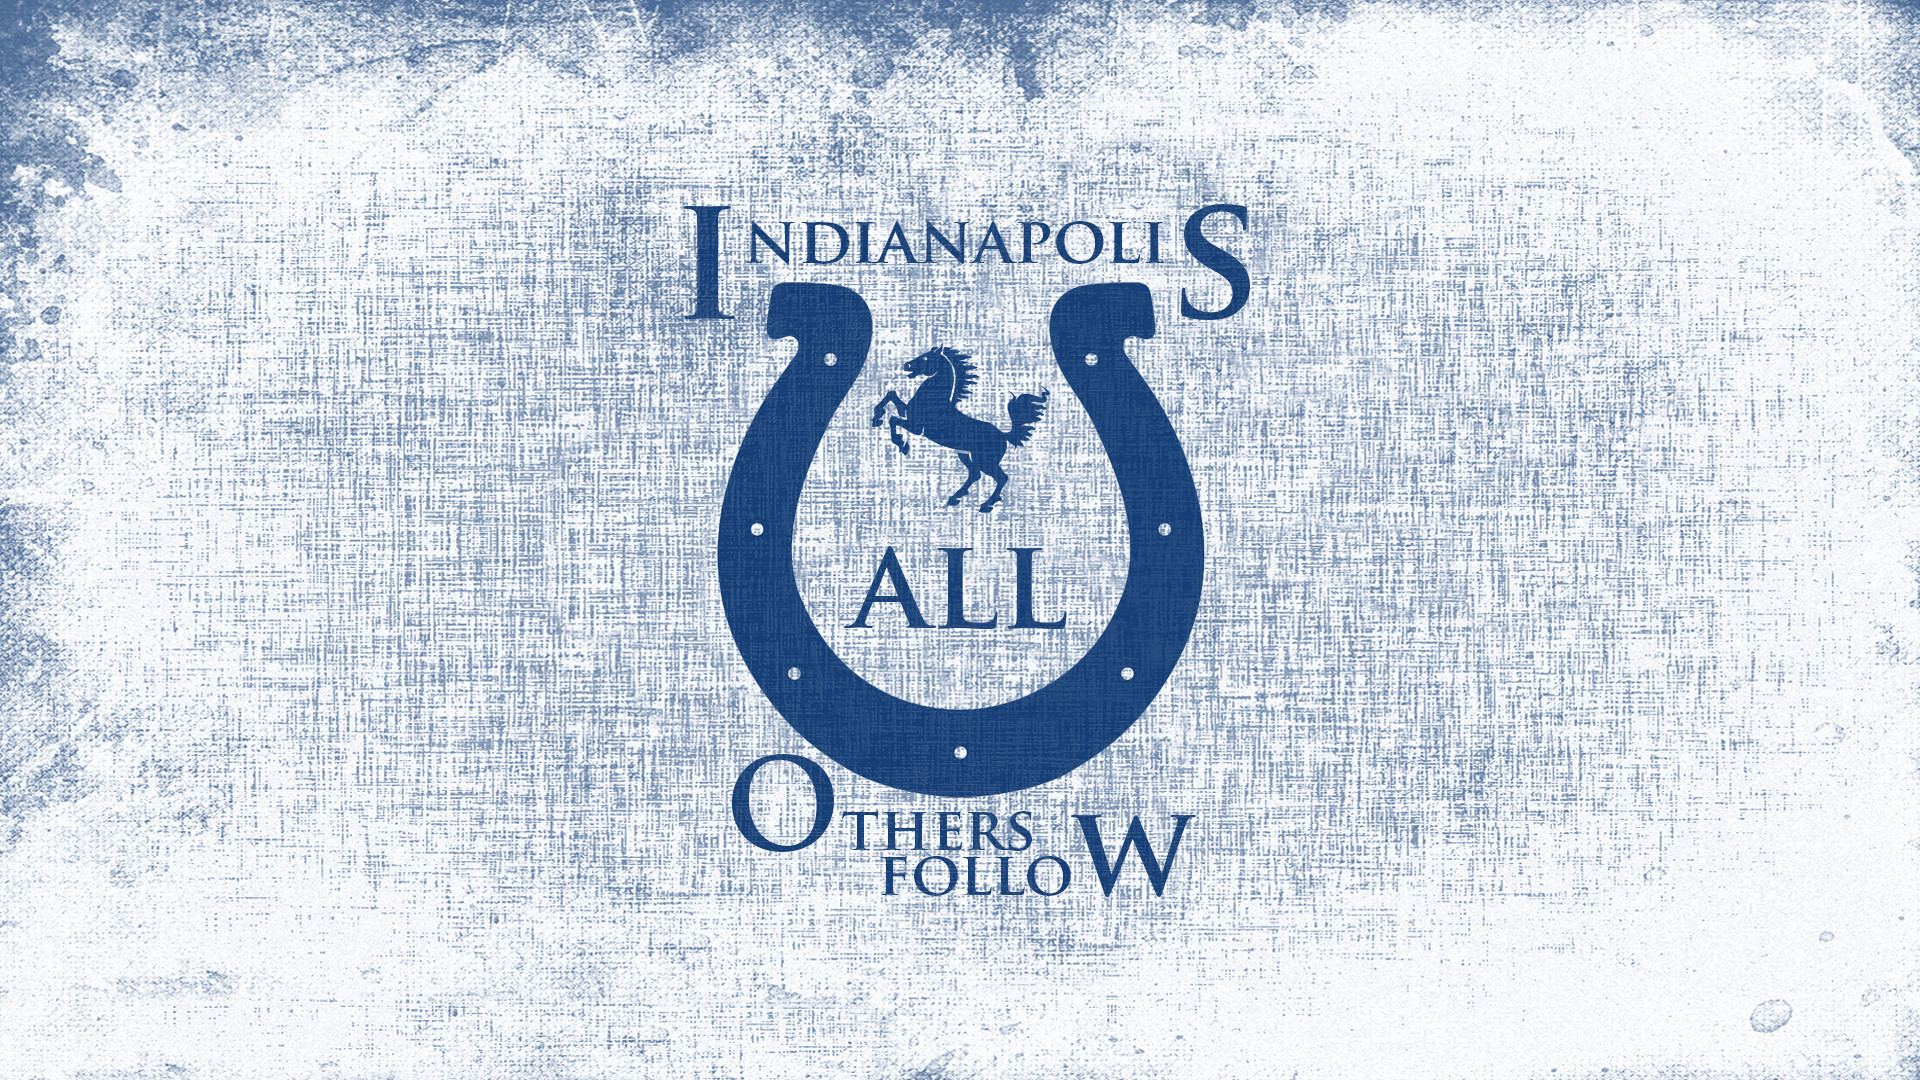 Indianapolis Colts Wallpapers 2016 - Wallpaper Cave